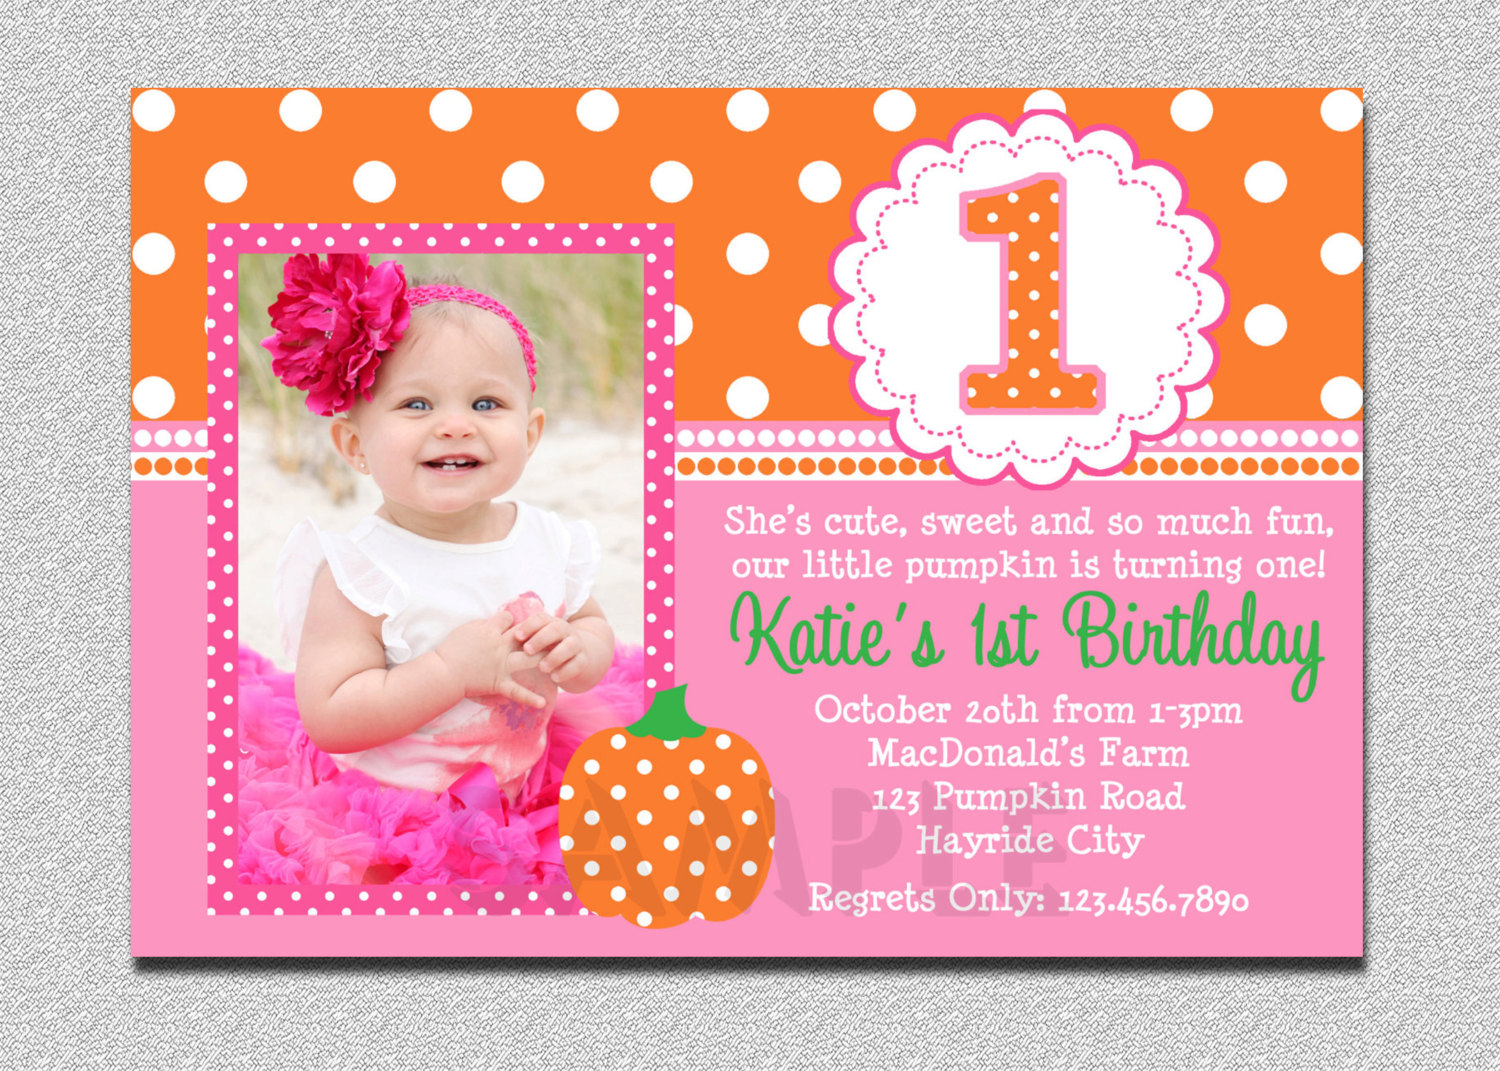 first birthday invitations ; Exciting-First-Birthday-Party-Invitations-For-Additional-Birthday-Invites-Inspirational-First-Birthday-Party-Invitations